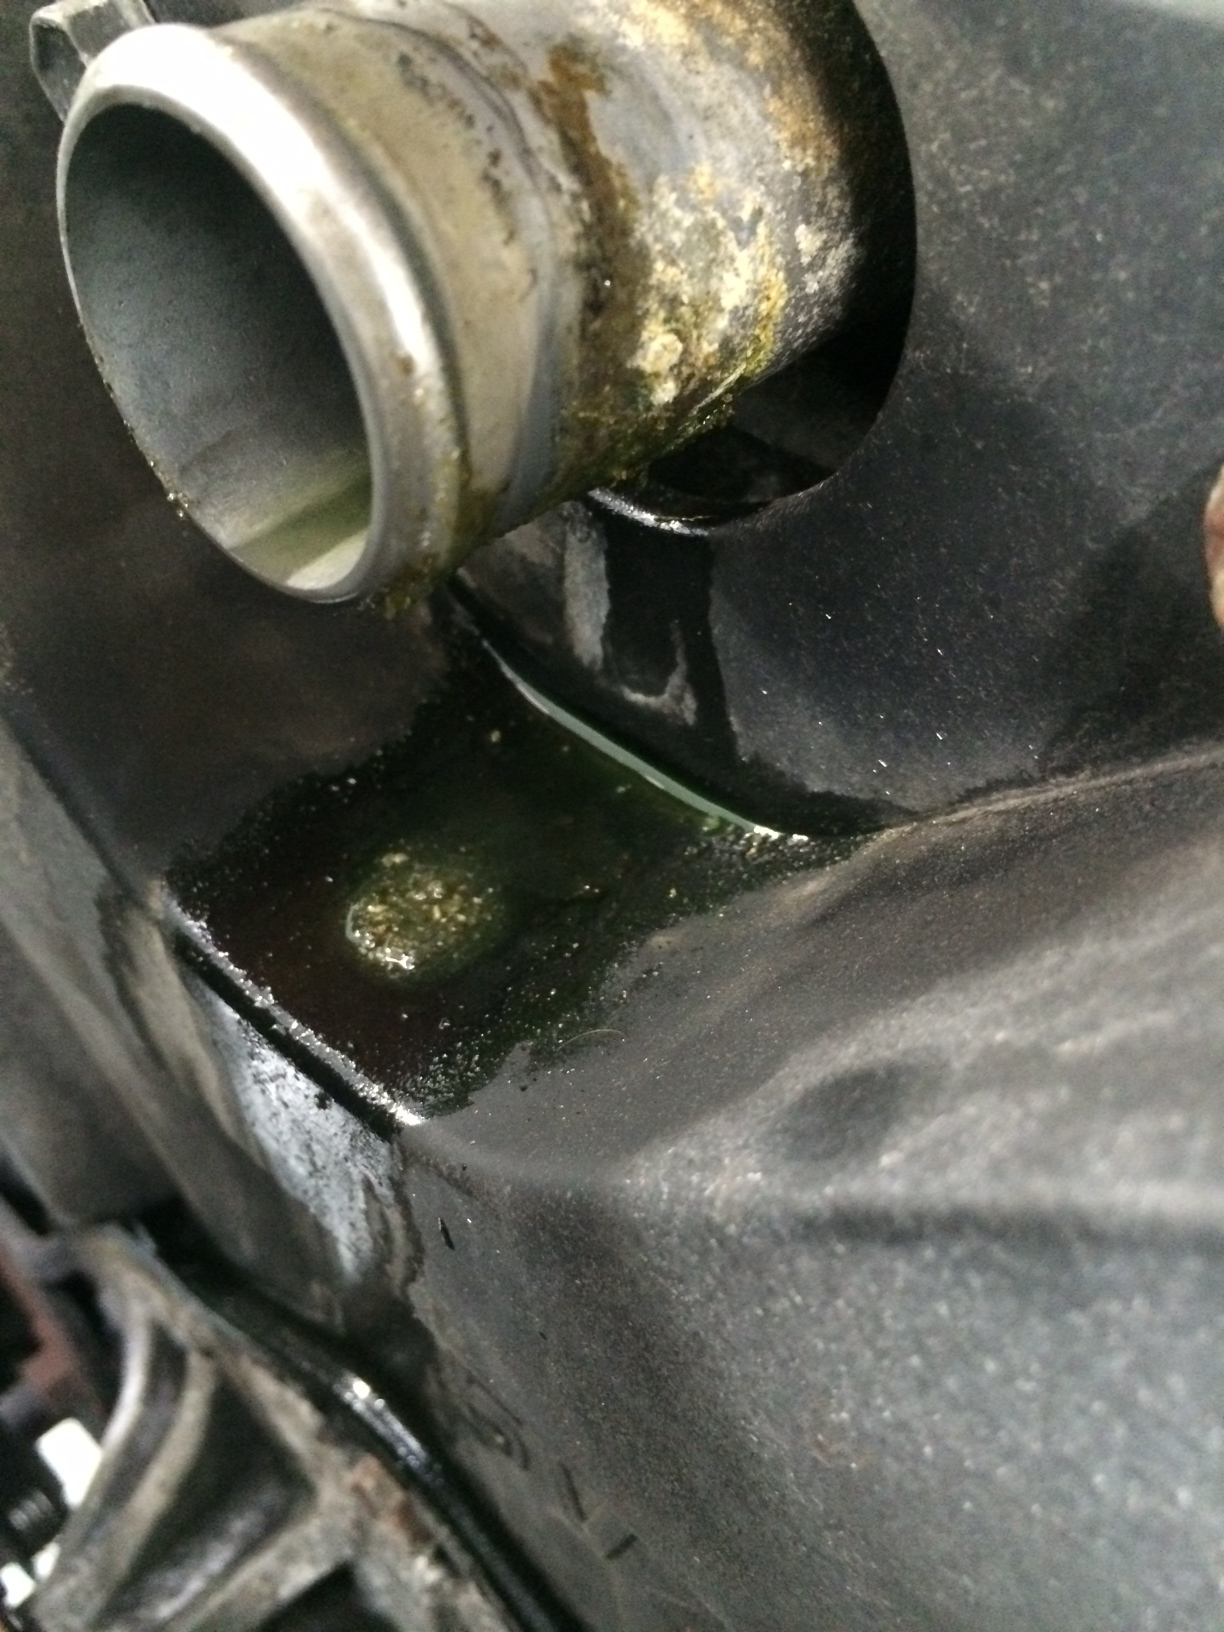 Coolant leaks and corrosion